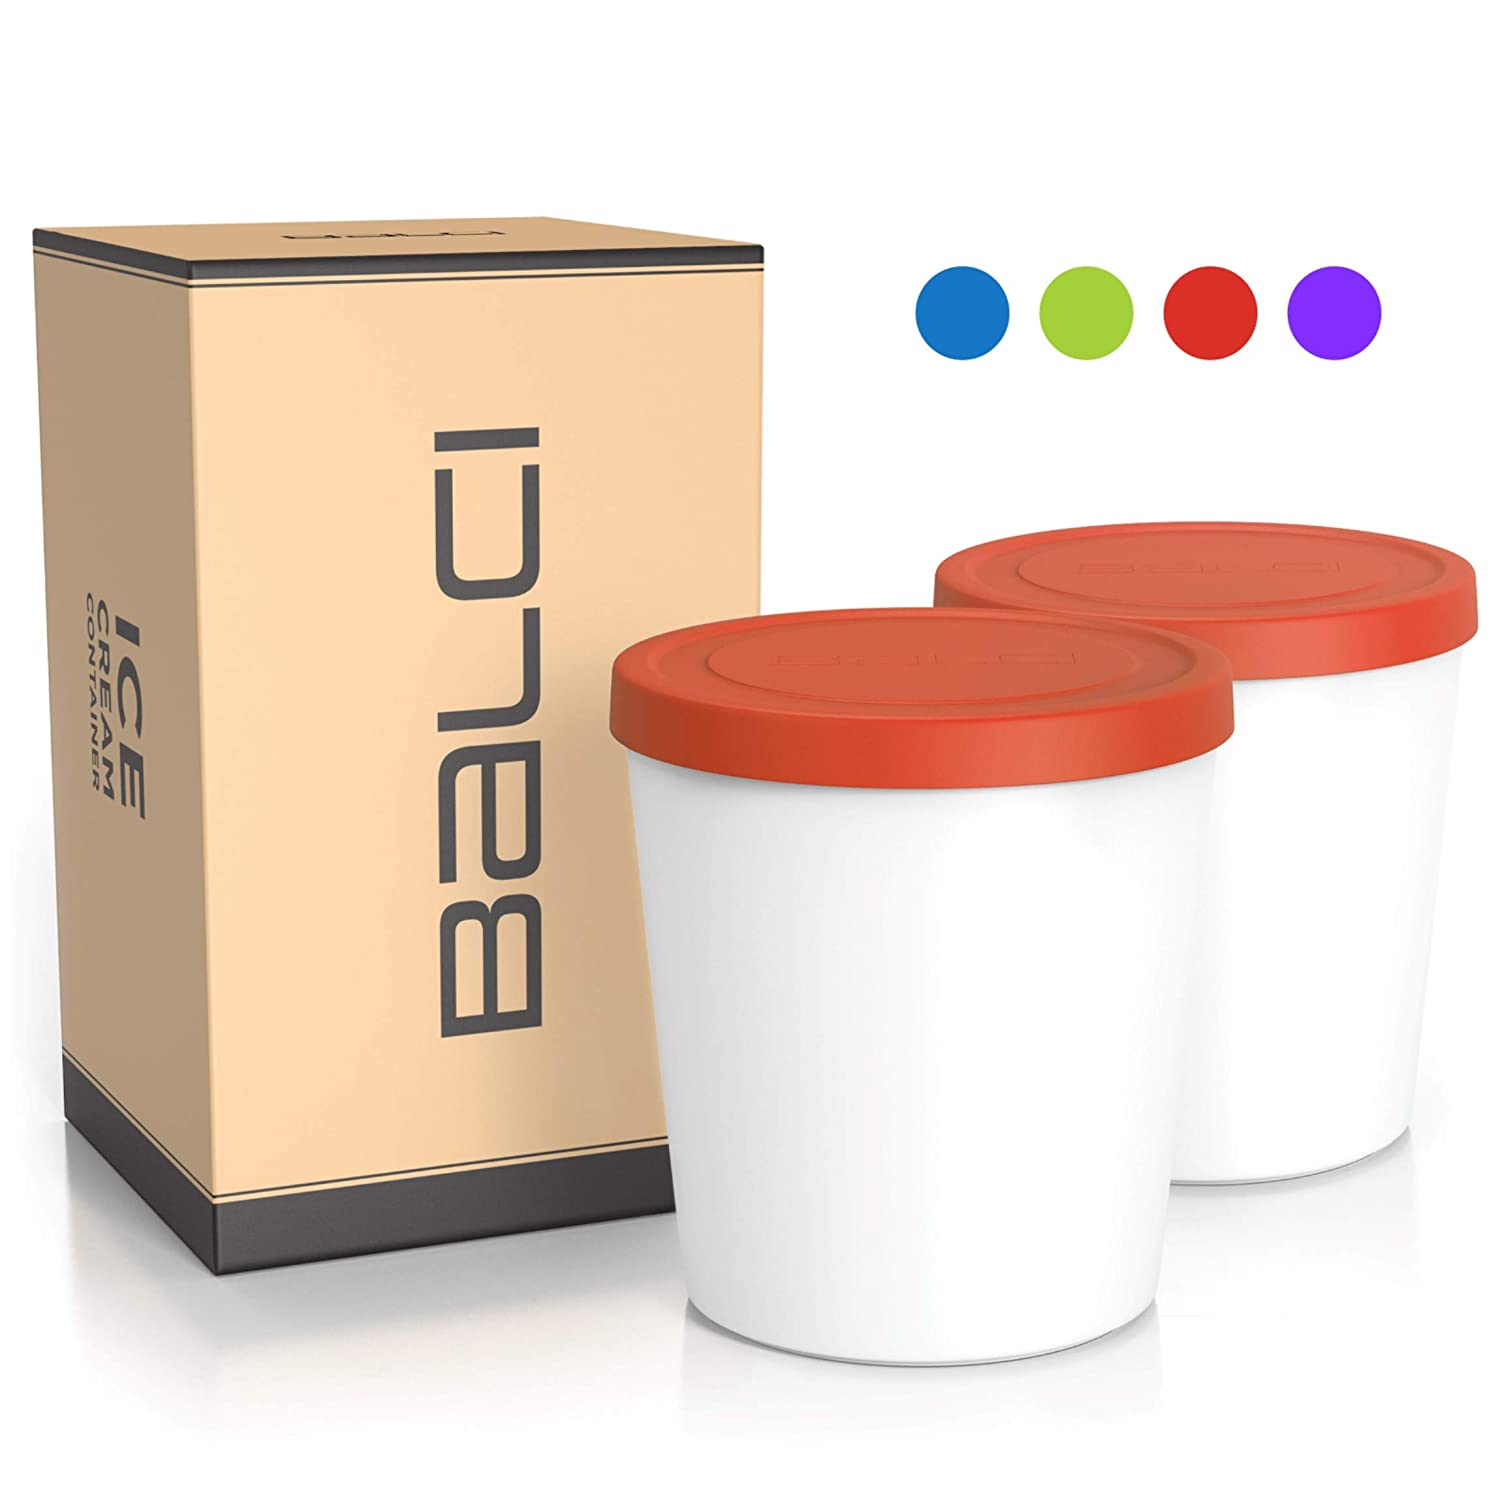 BALCI - Premium Ice Cream Container (2 PACK - 1 Quart Each) Perfect Freezer Storage Tubs with Lids for Ice Cream, Sorbet and Gelato! (RED)